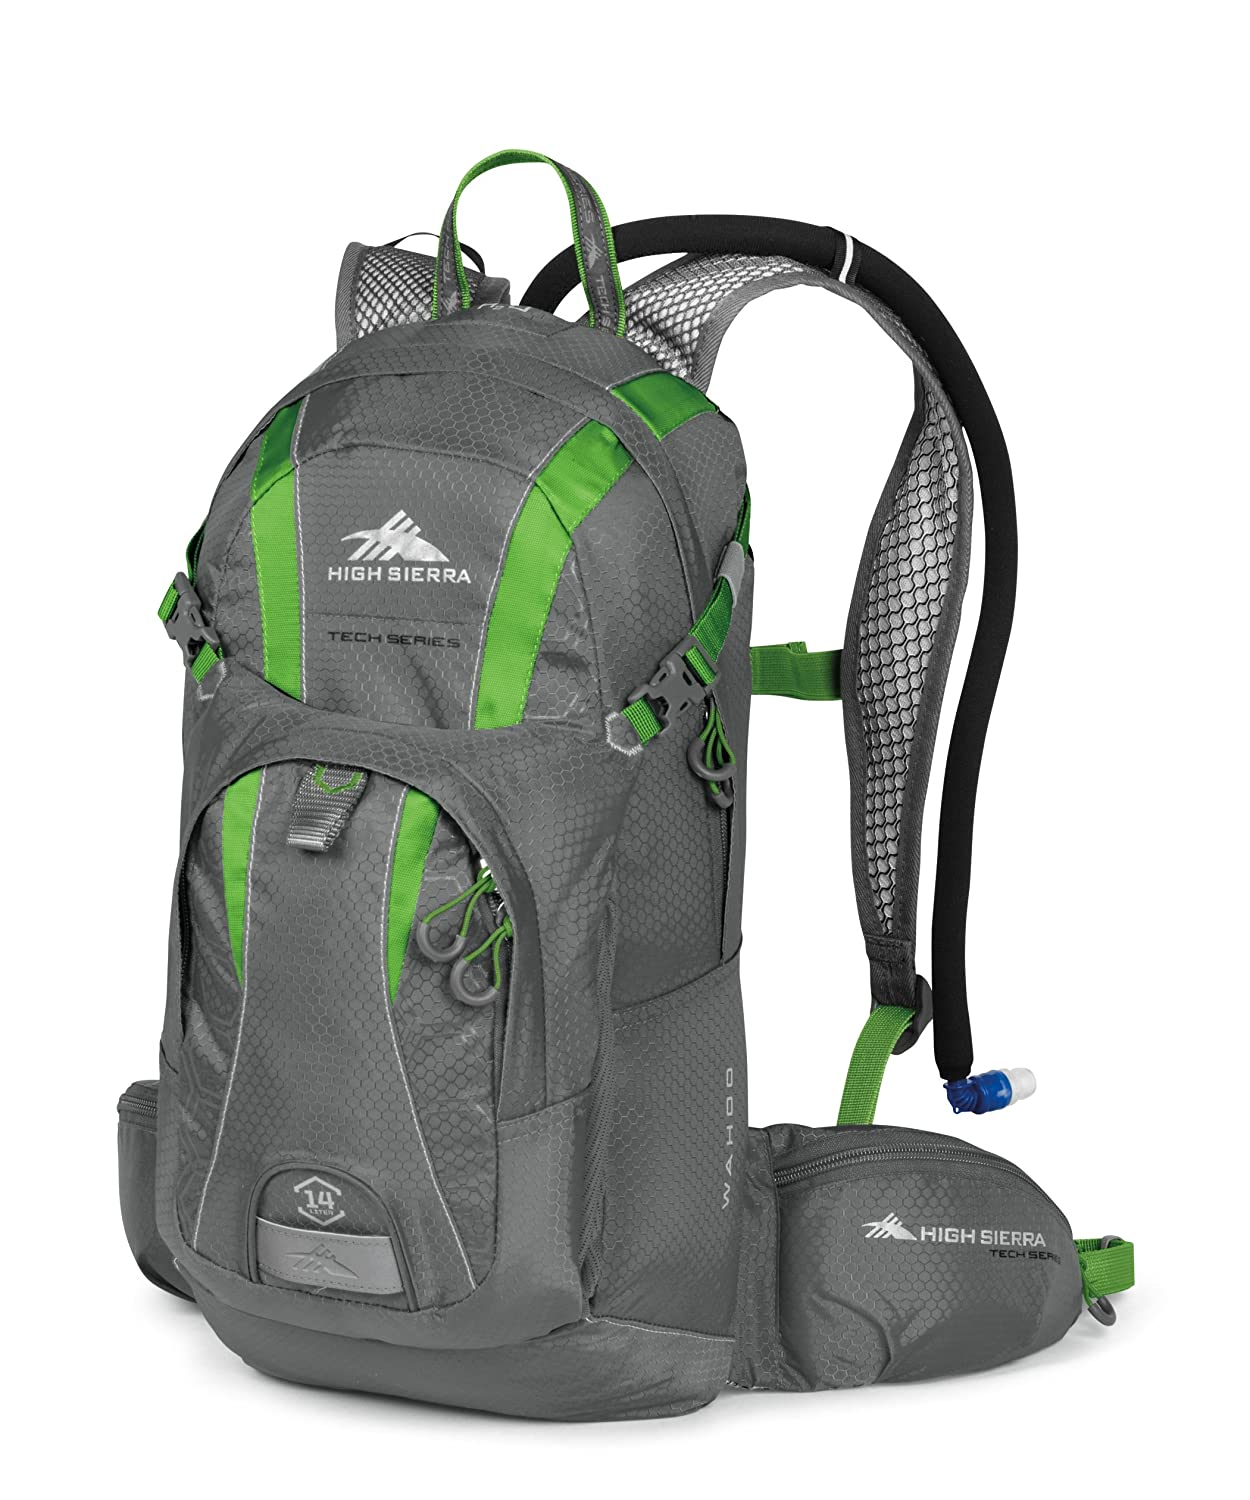 High Sierra Wahoo 14 Backpack